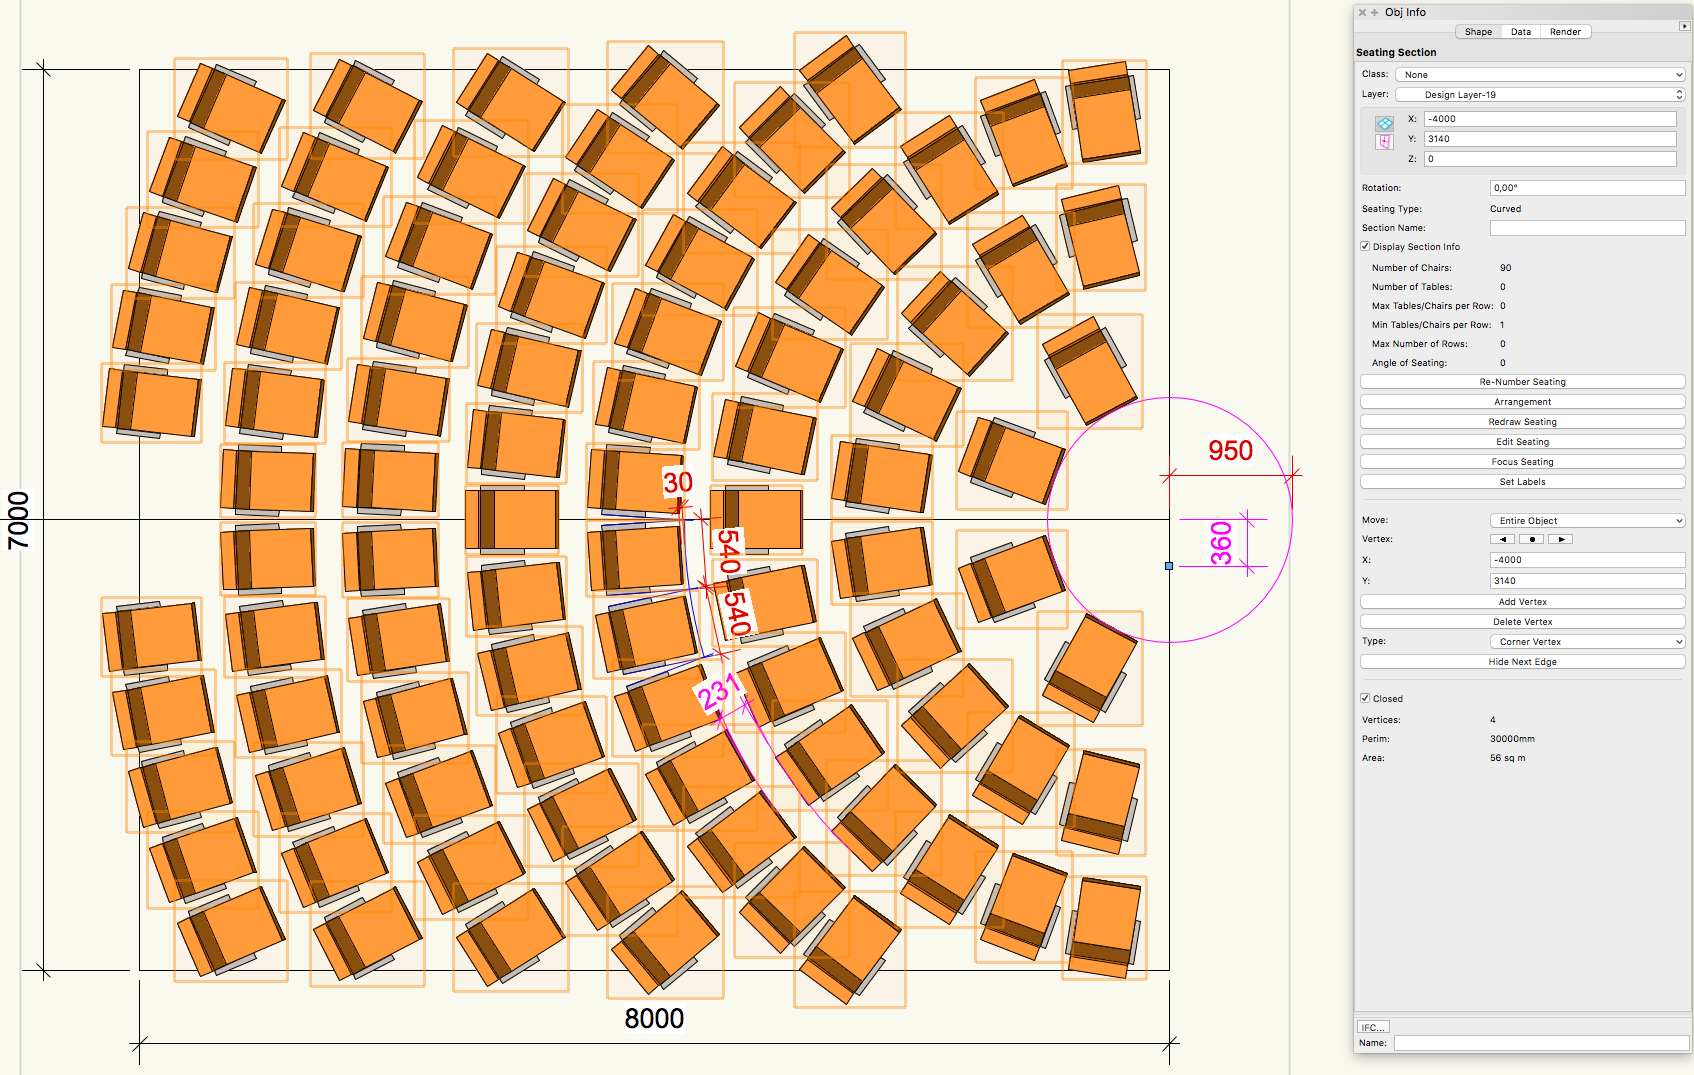 VW2017 seating section curved 20161129.png